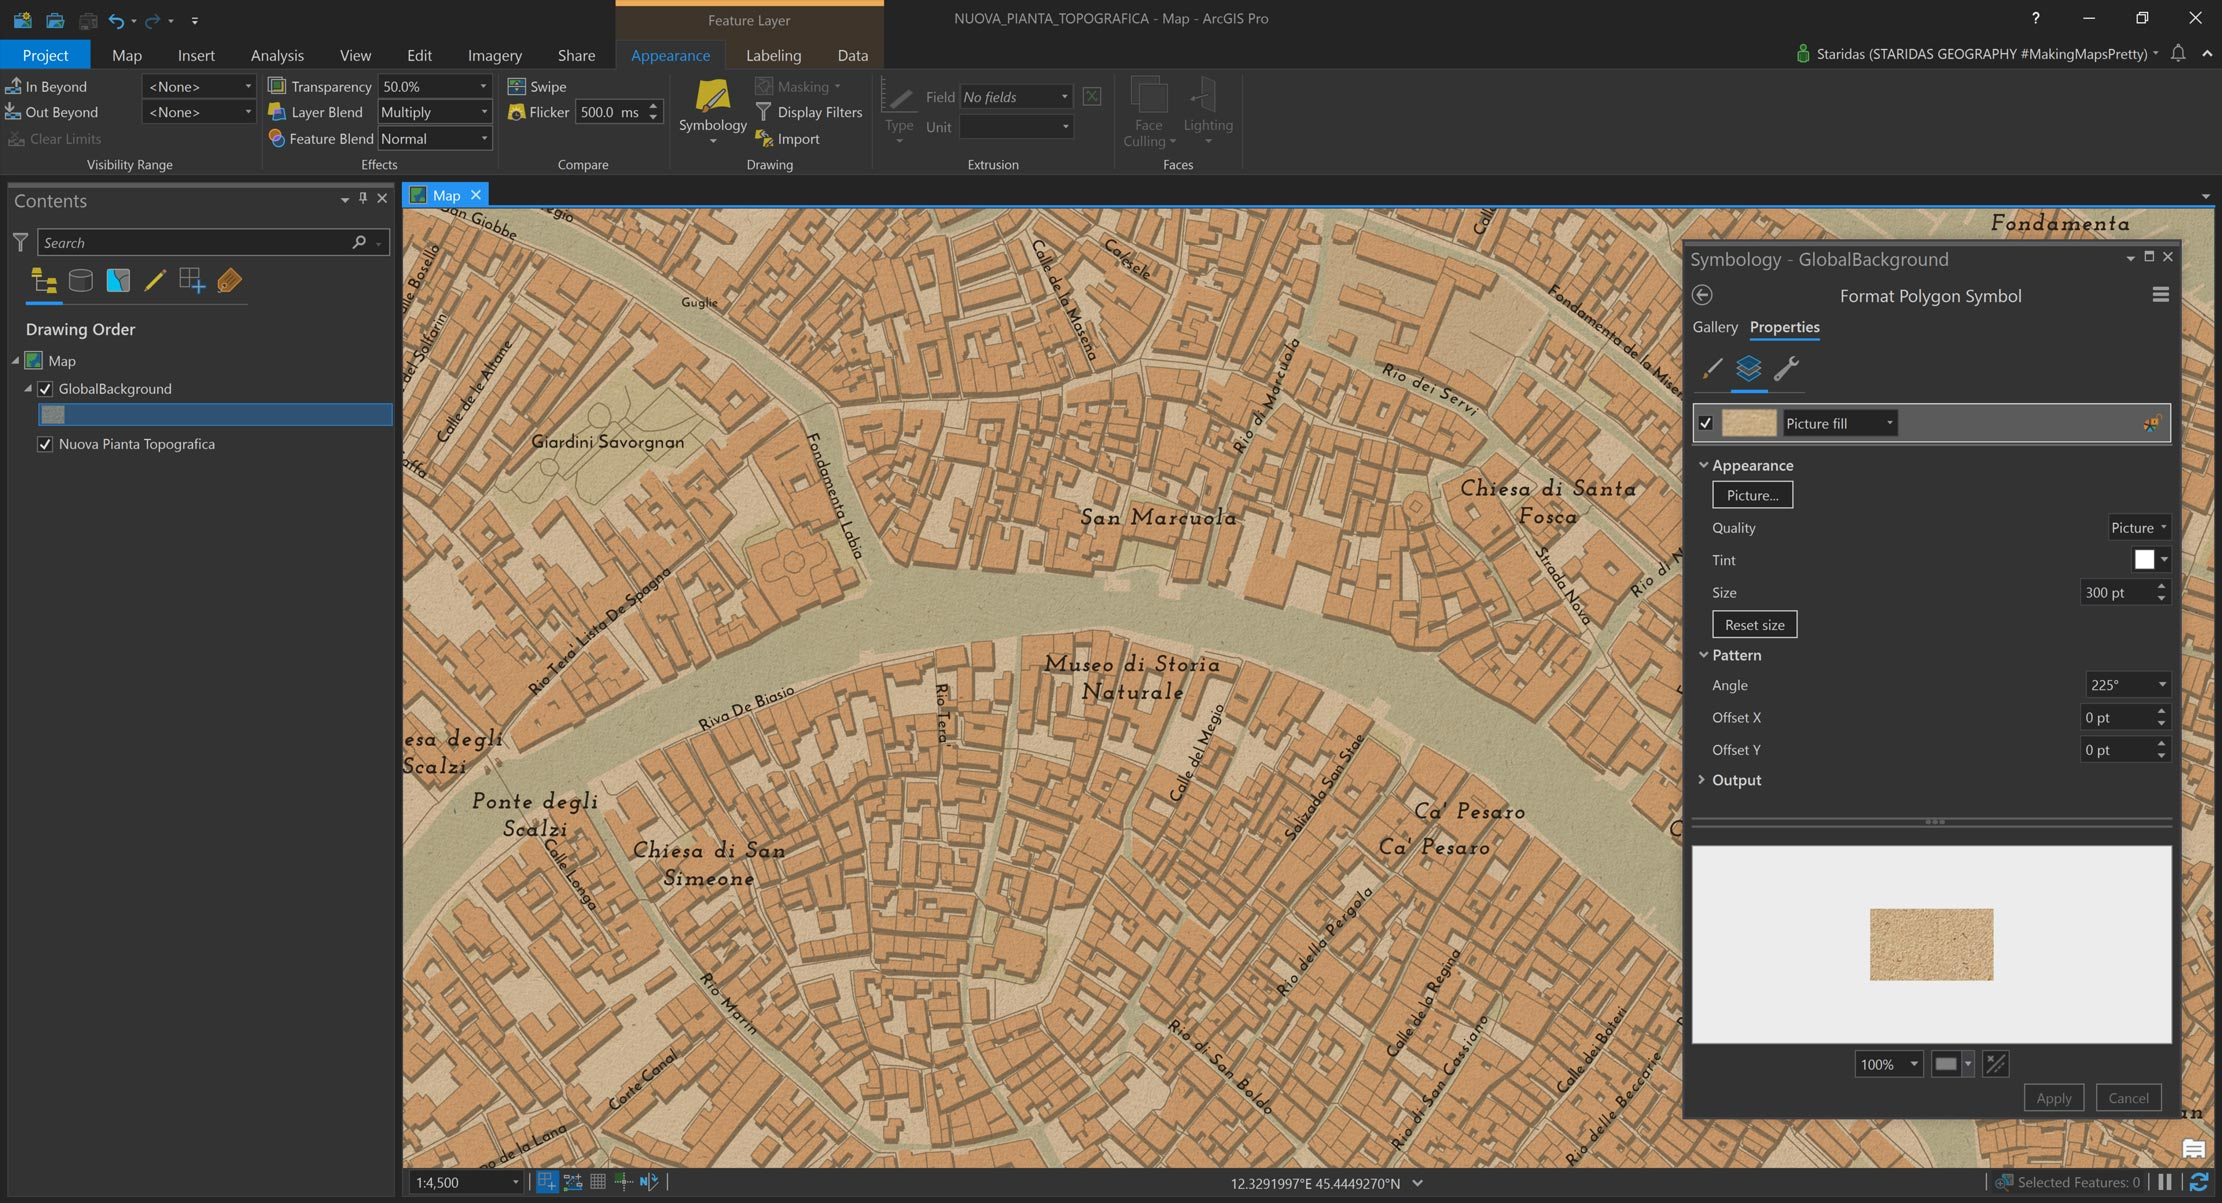 Picture 7: Consuming the Nuova Pianta Topografica vector basemap in ArcGIS Pro, with paper texture overlay.